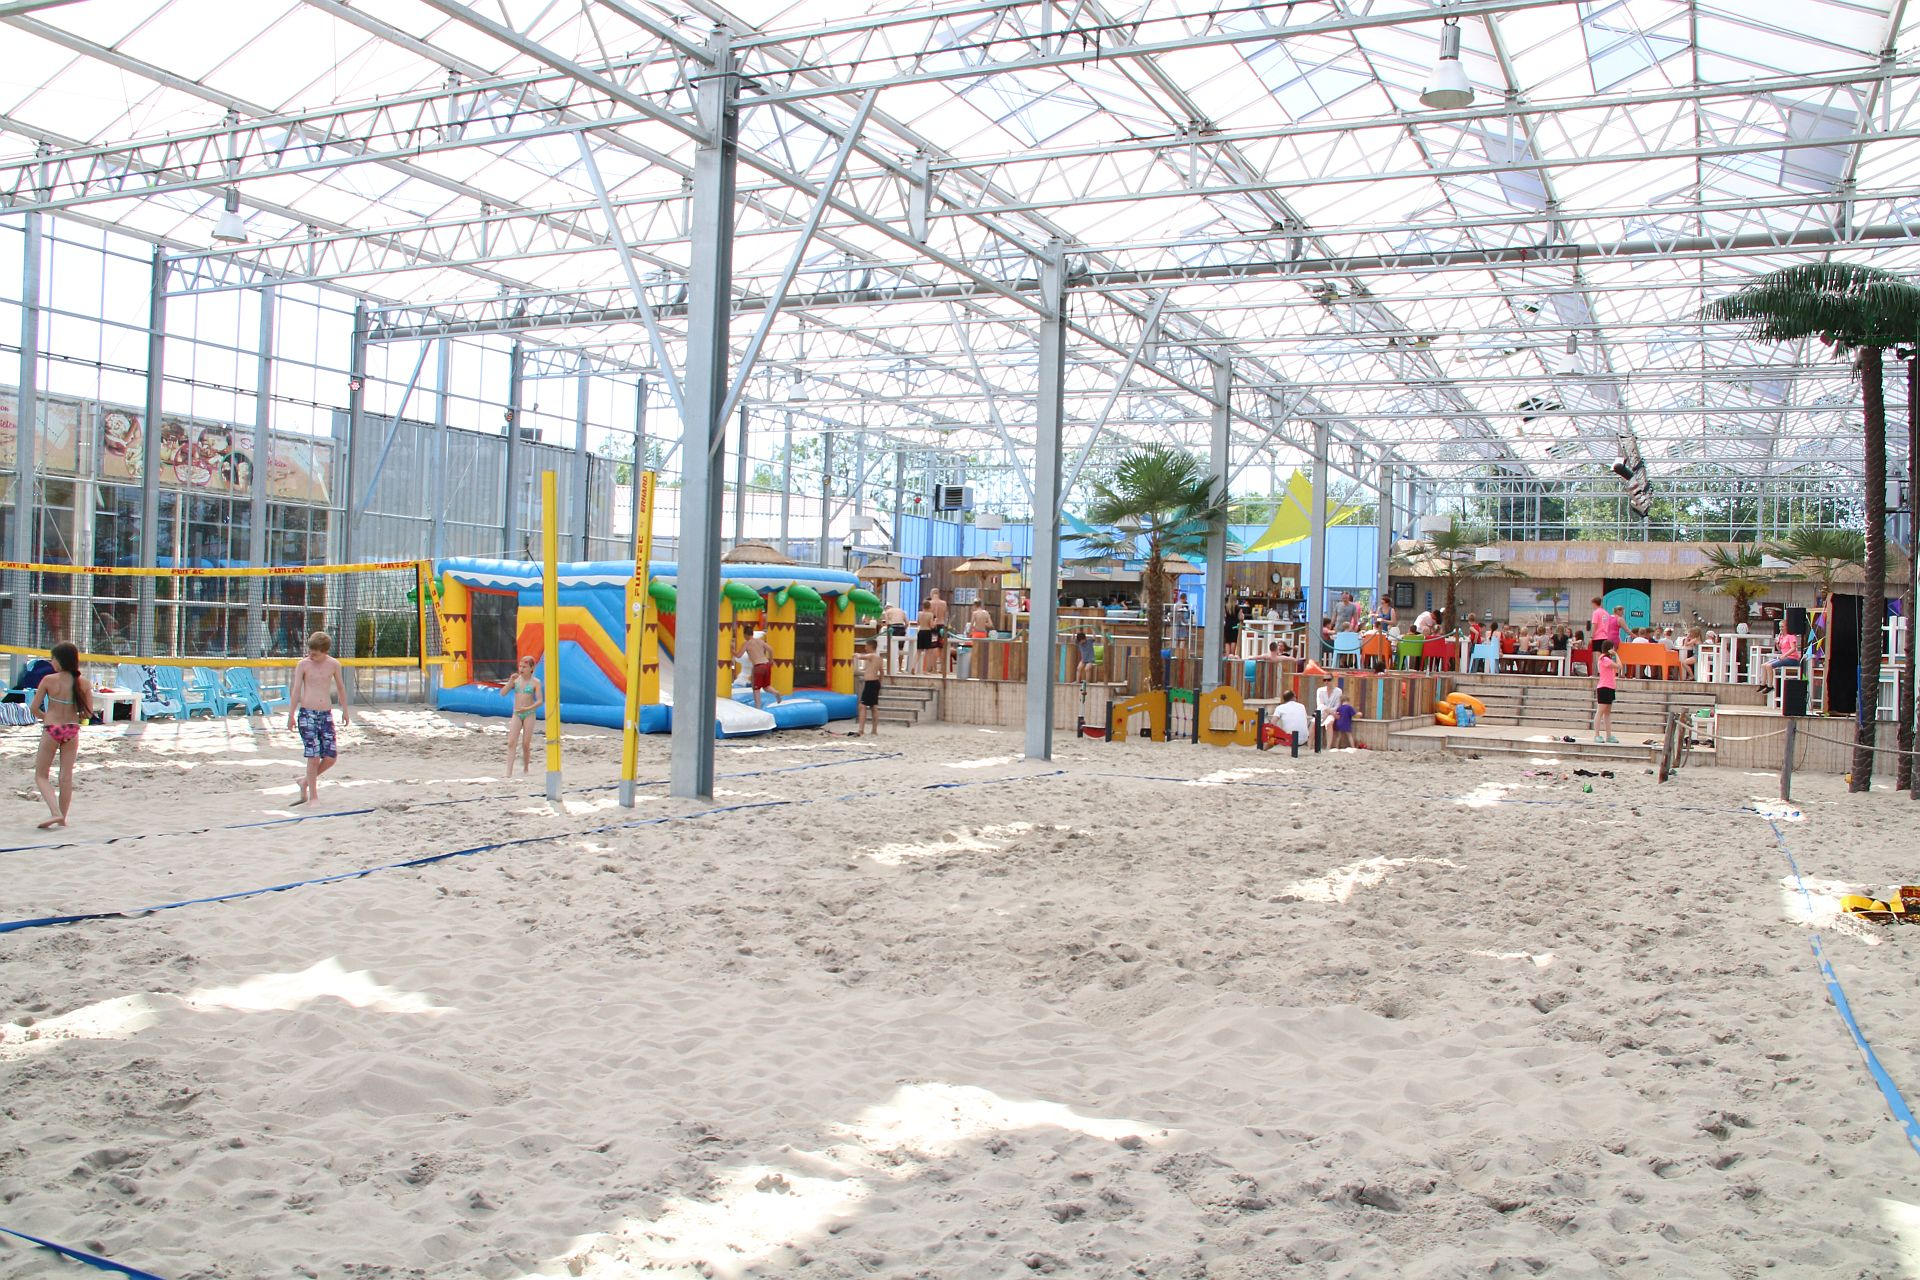 Kamperen in september op Vakantiepark het Stoetenslagh! - Kamperen september